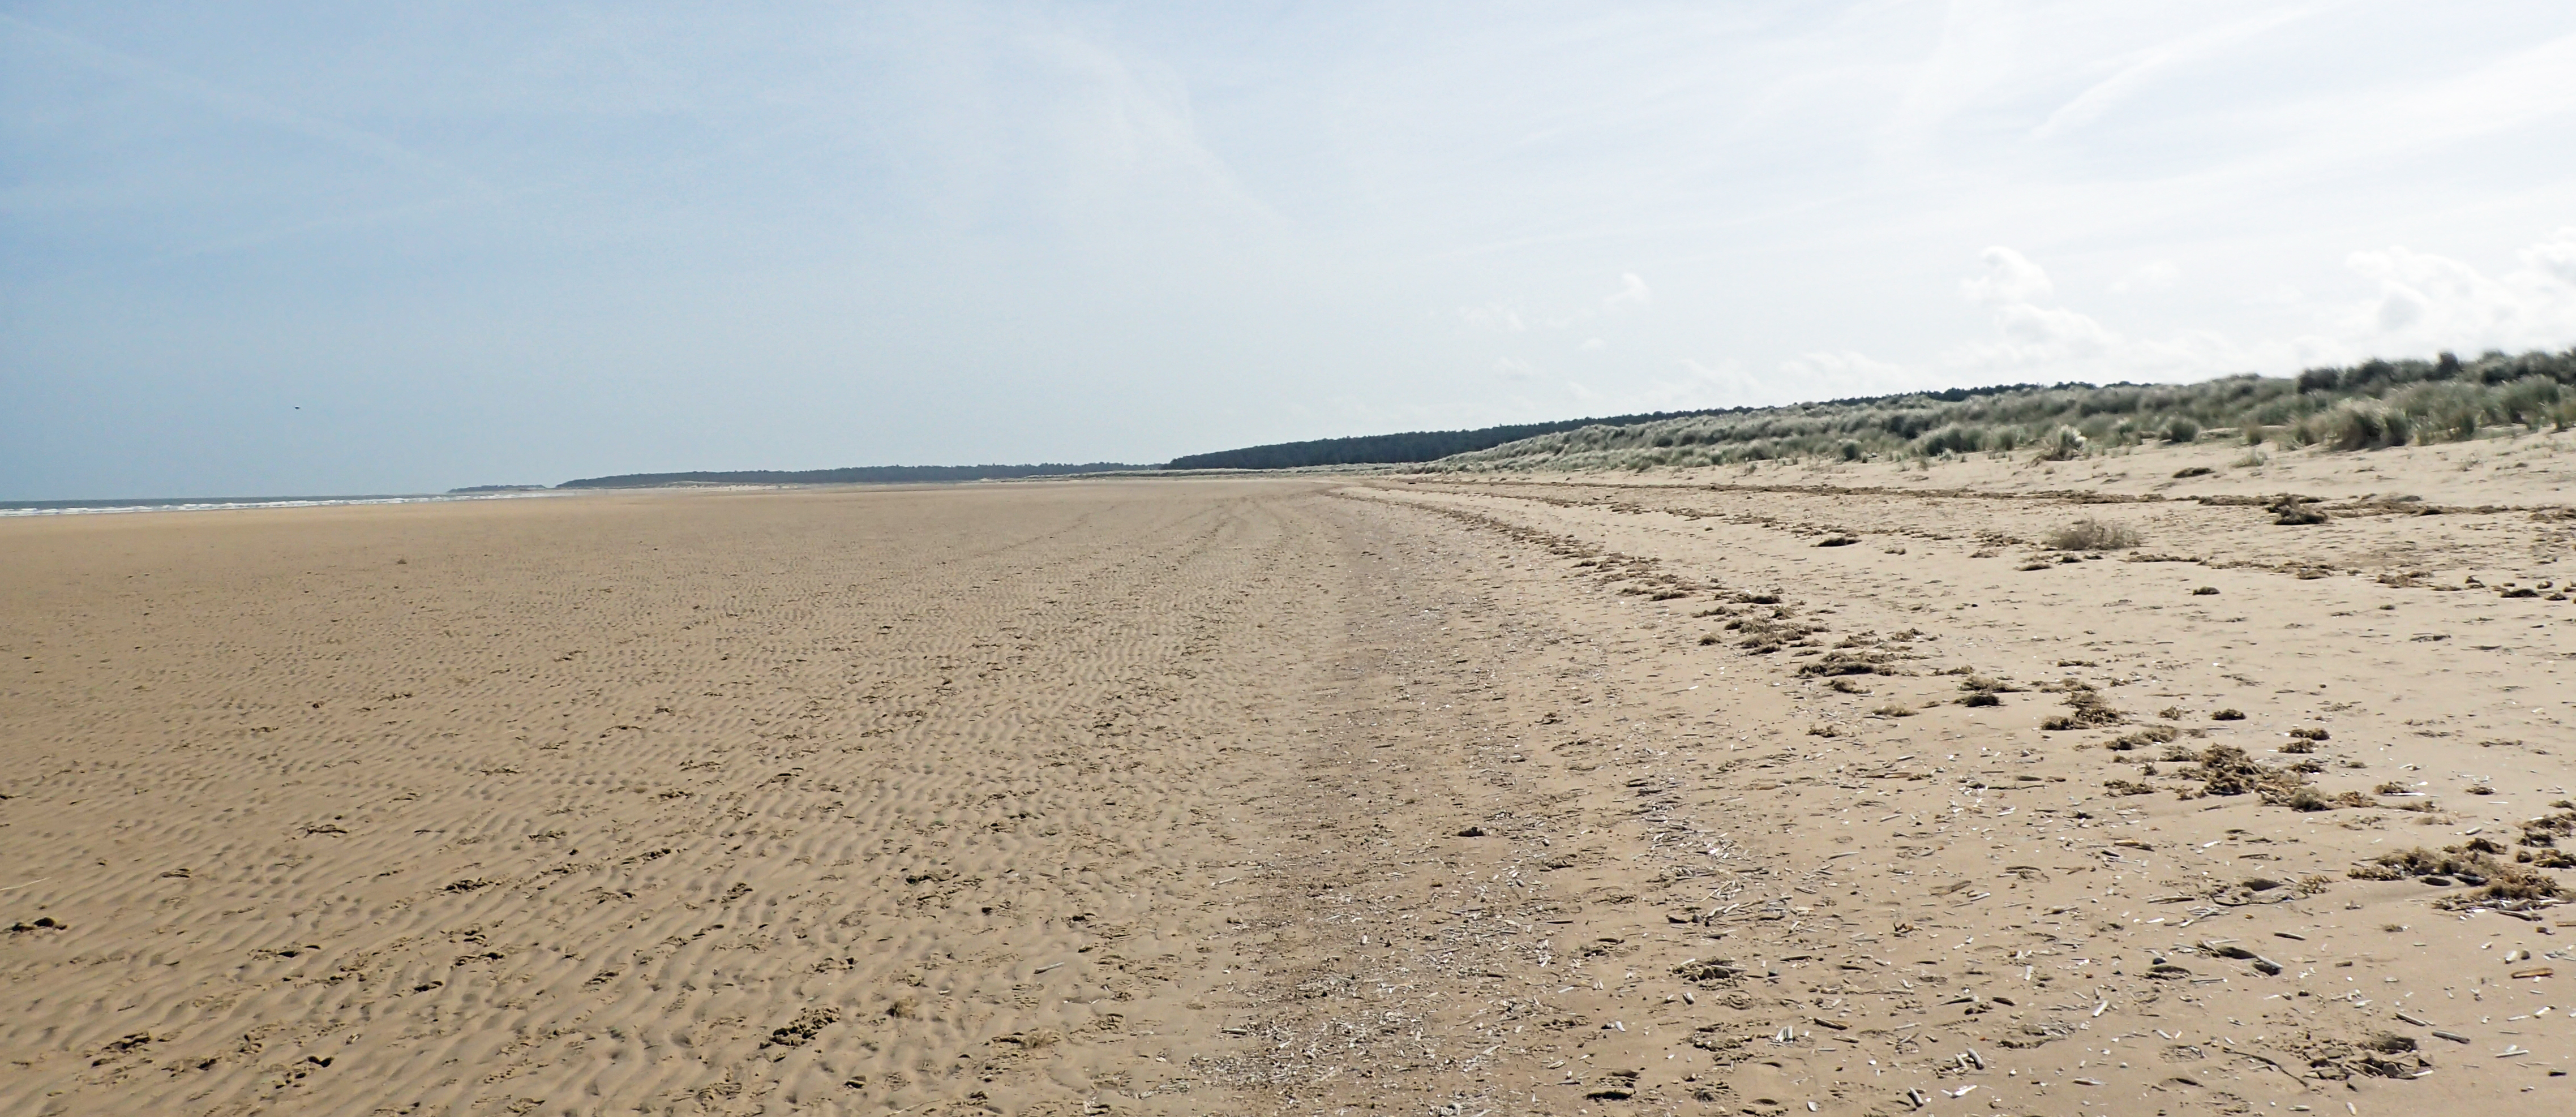 Sandy isolation as I walk towards The Firs at Holme Dunes National Nature Reserve